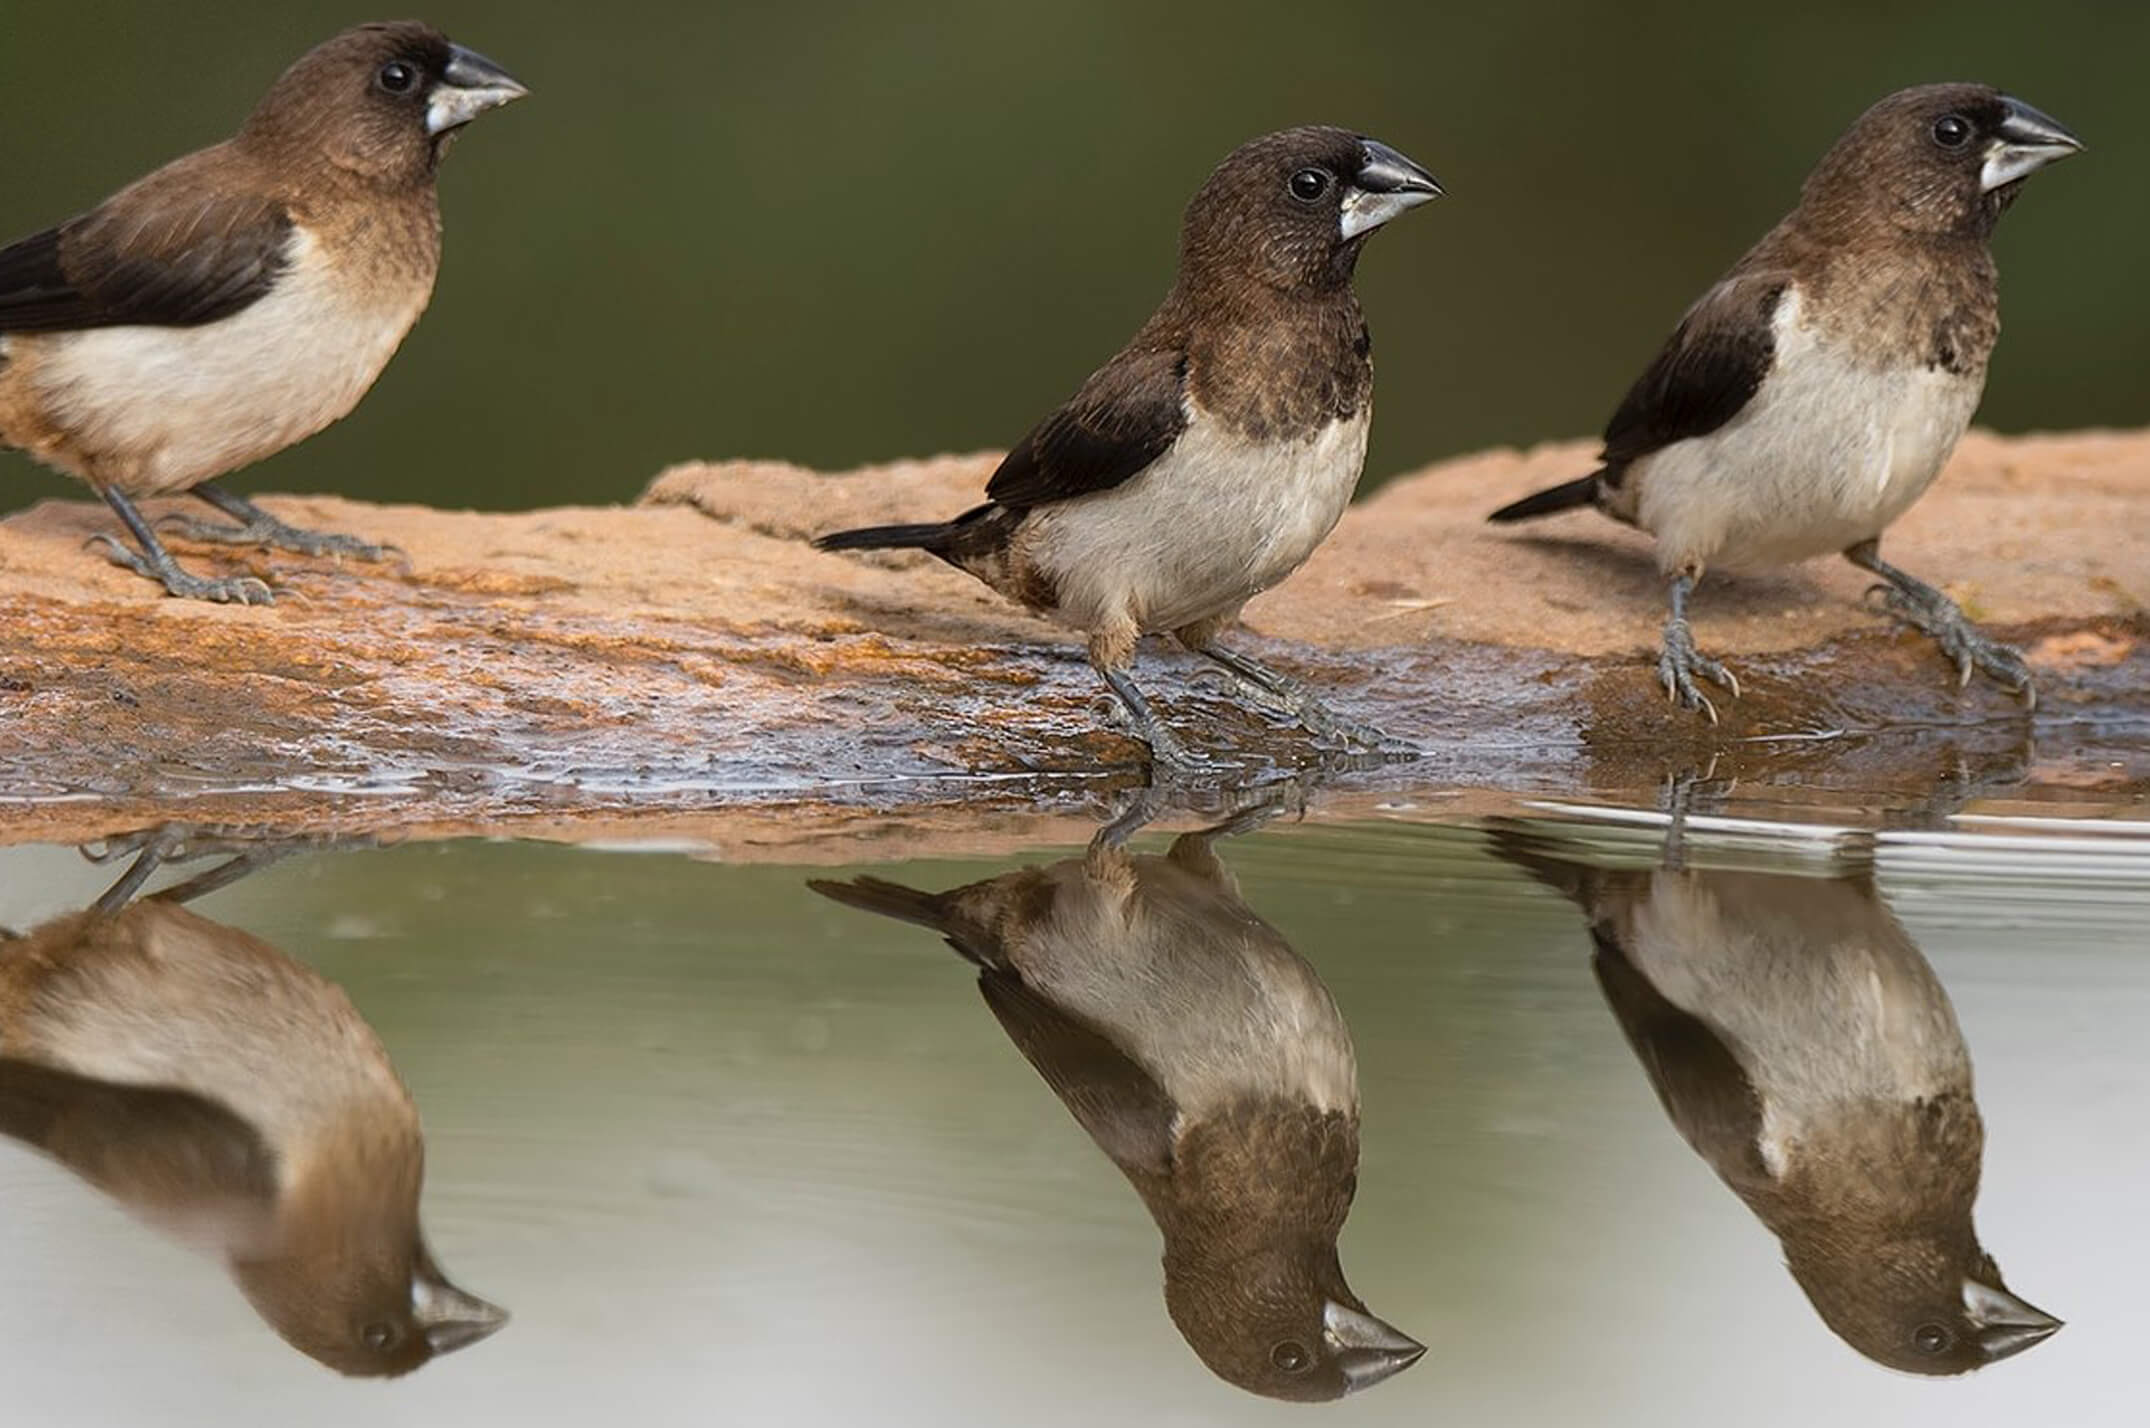 Three birds at waters edge with reflection in water